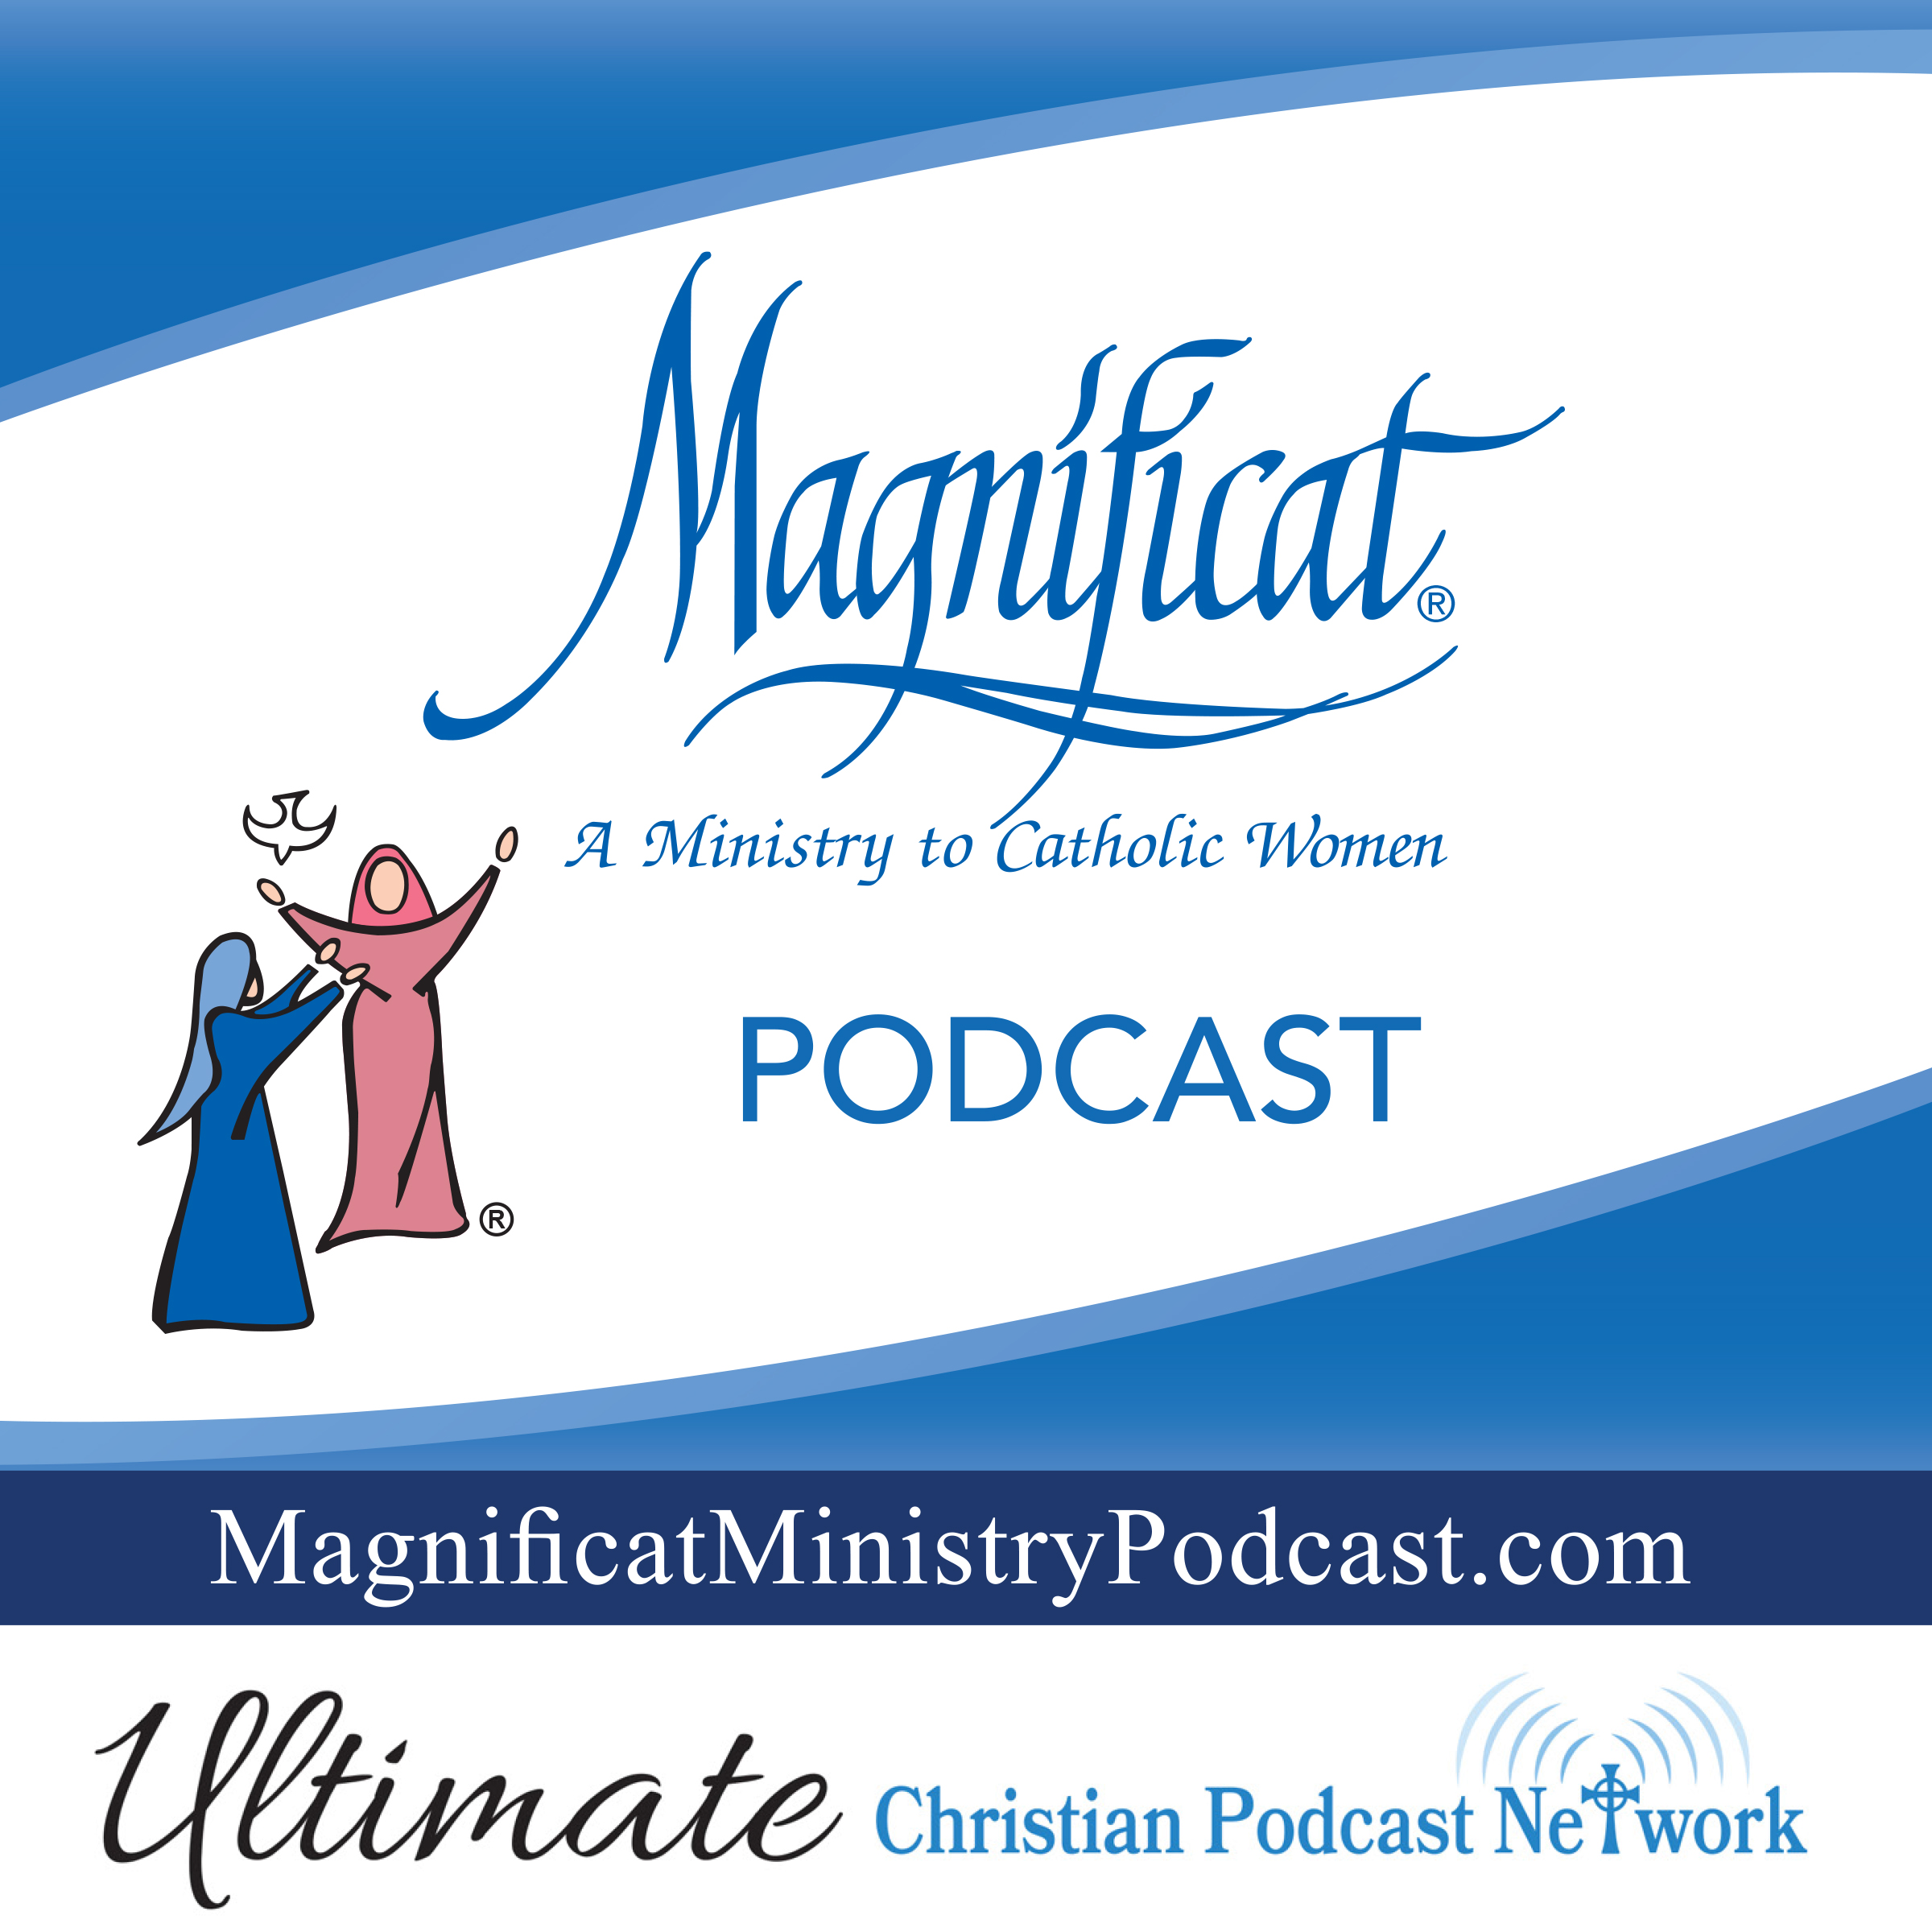 Magnificat Ministry Podcast